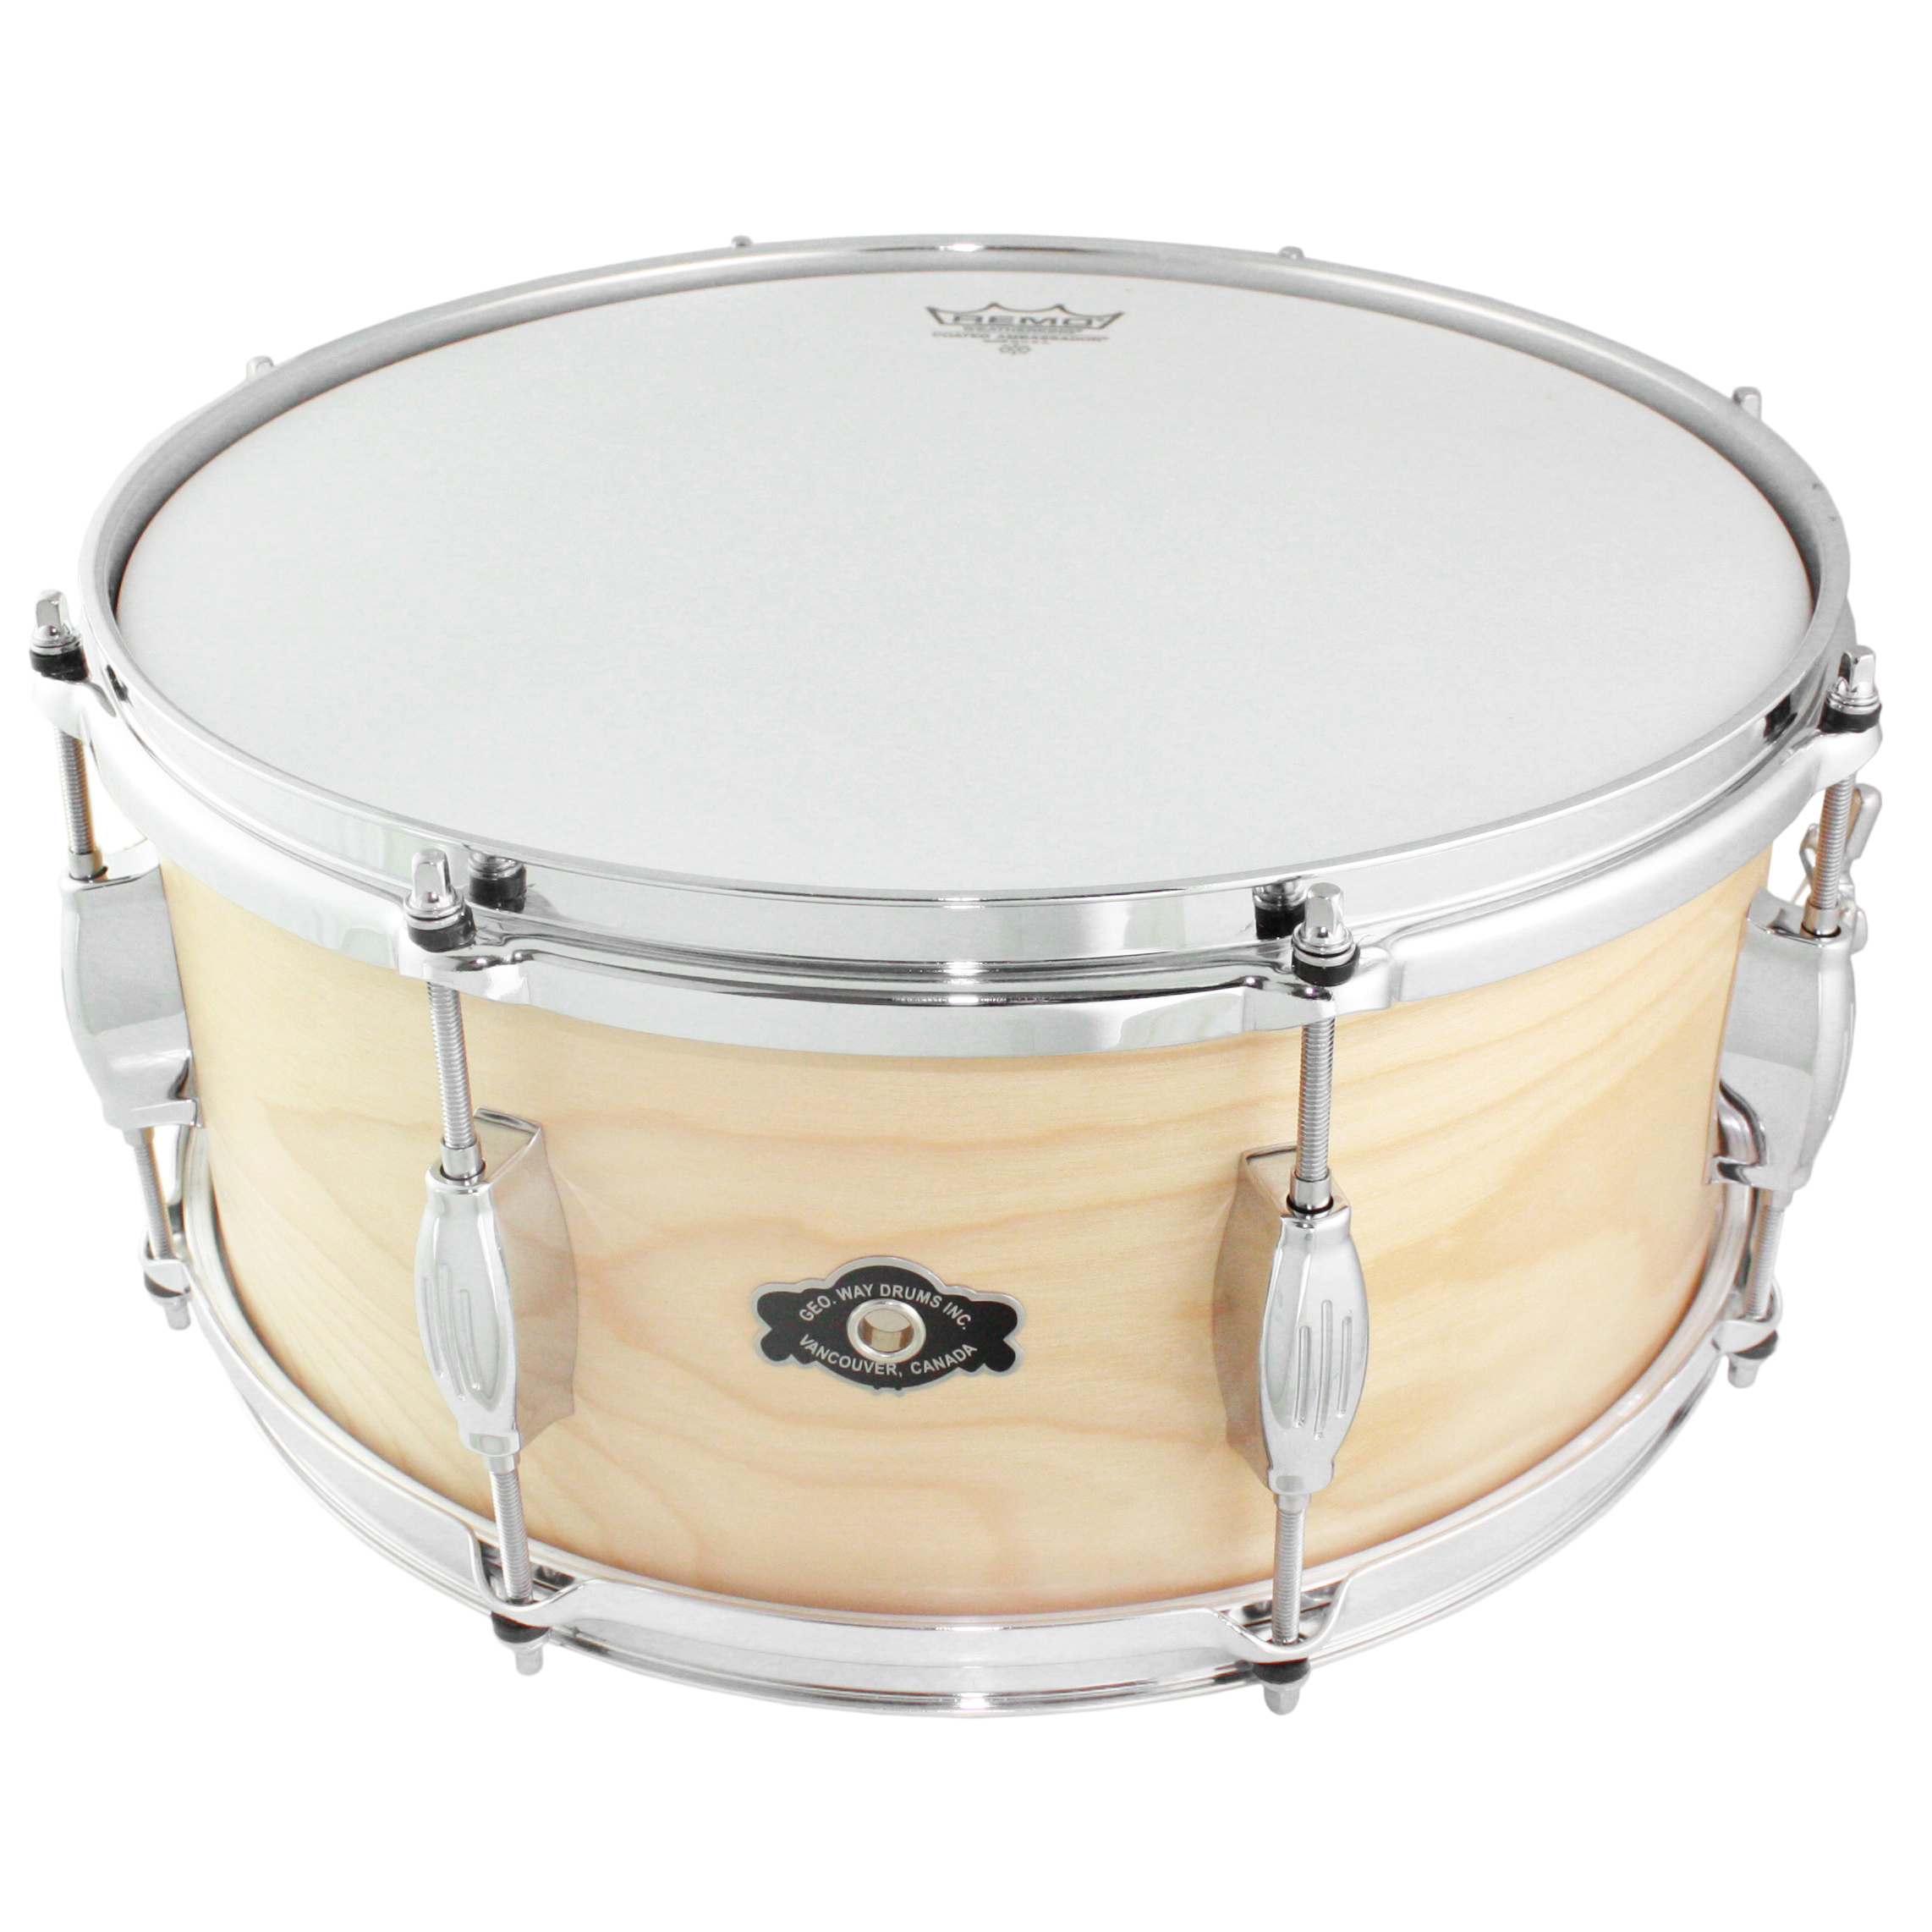 "George Way 6.5"" x 14"" Tradition Birch Natural Oil Snare Drum"